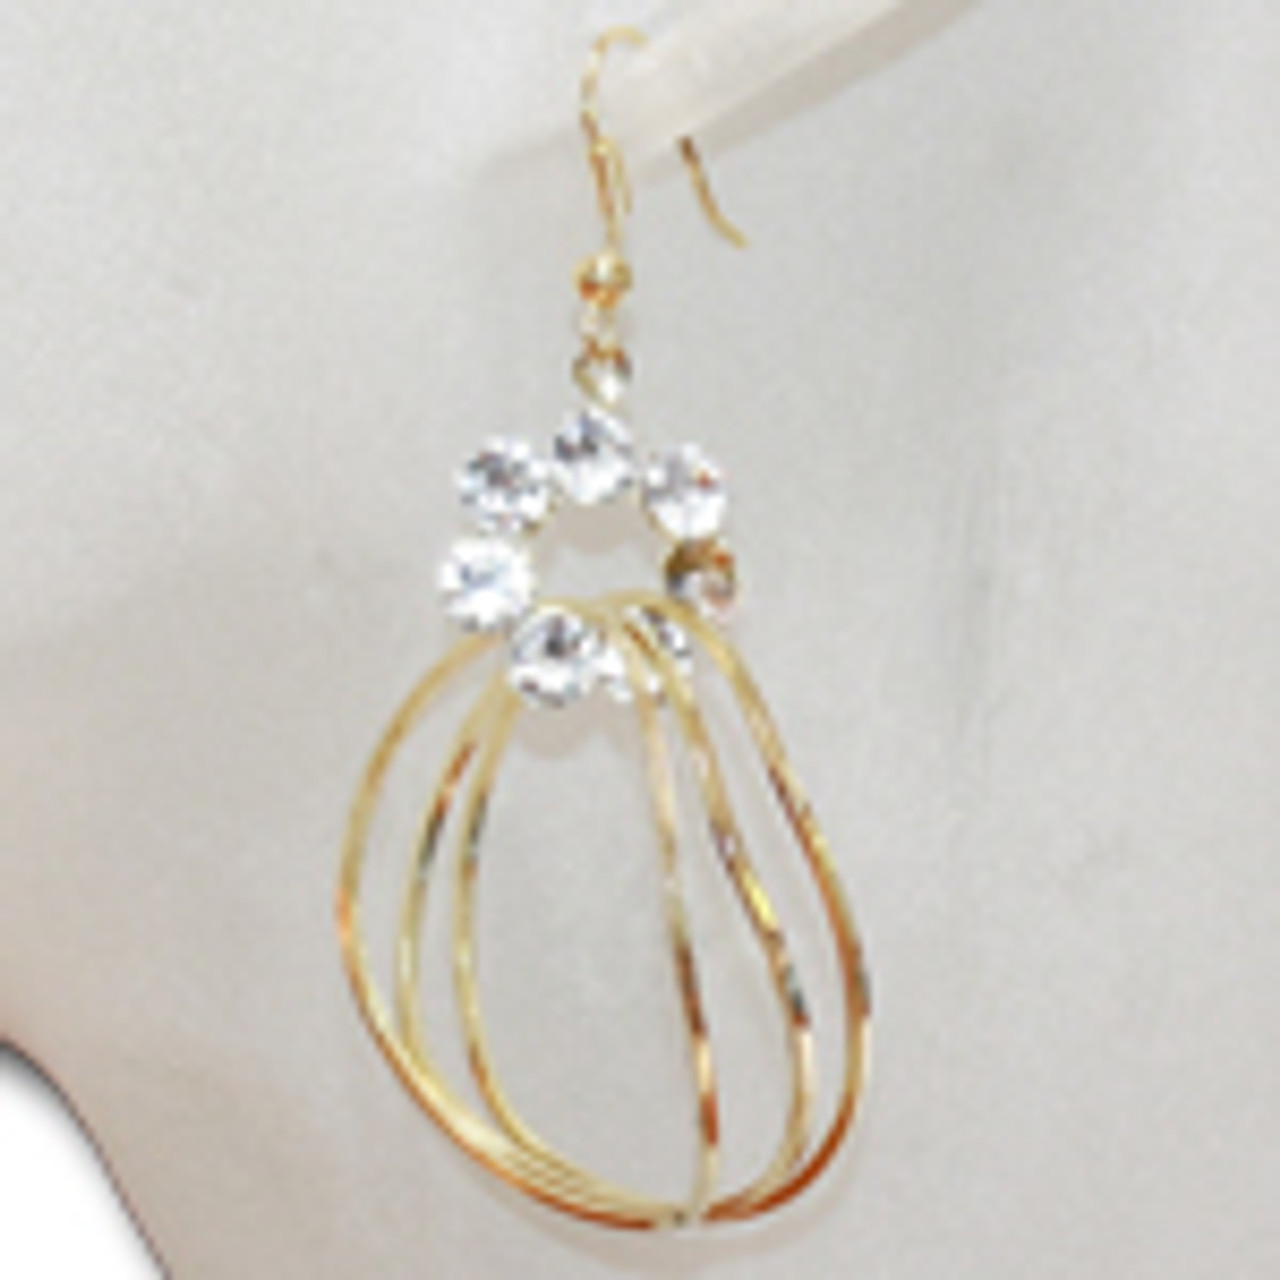 Wholesale golden hoop earrings